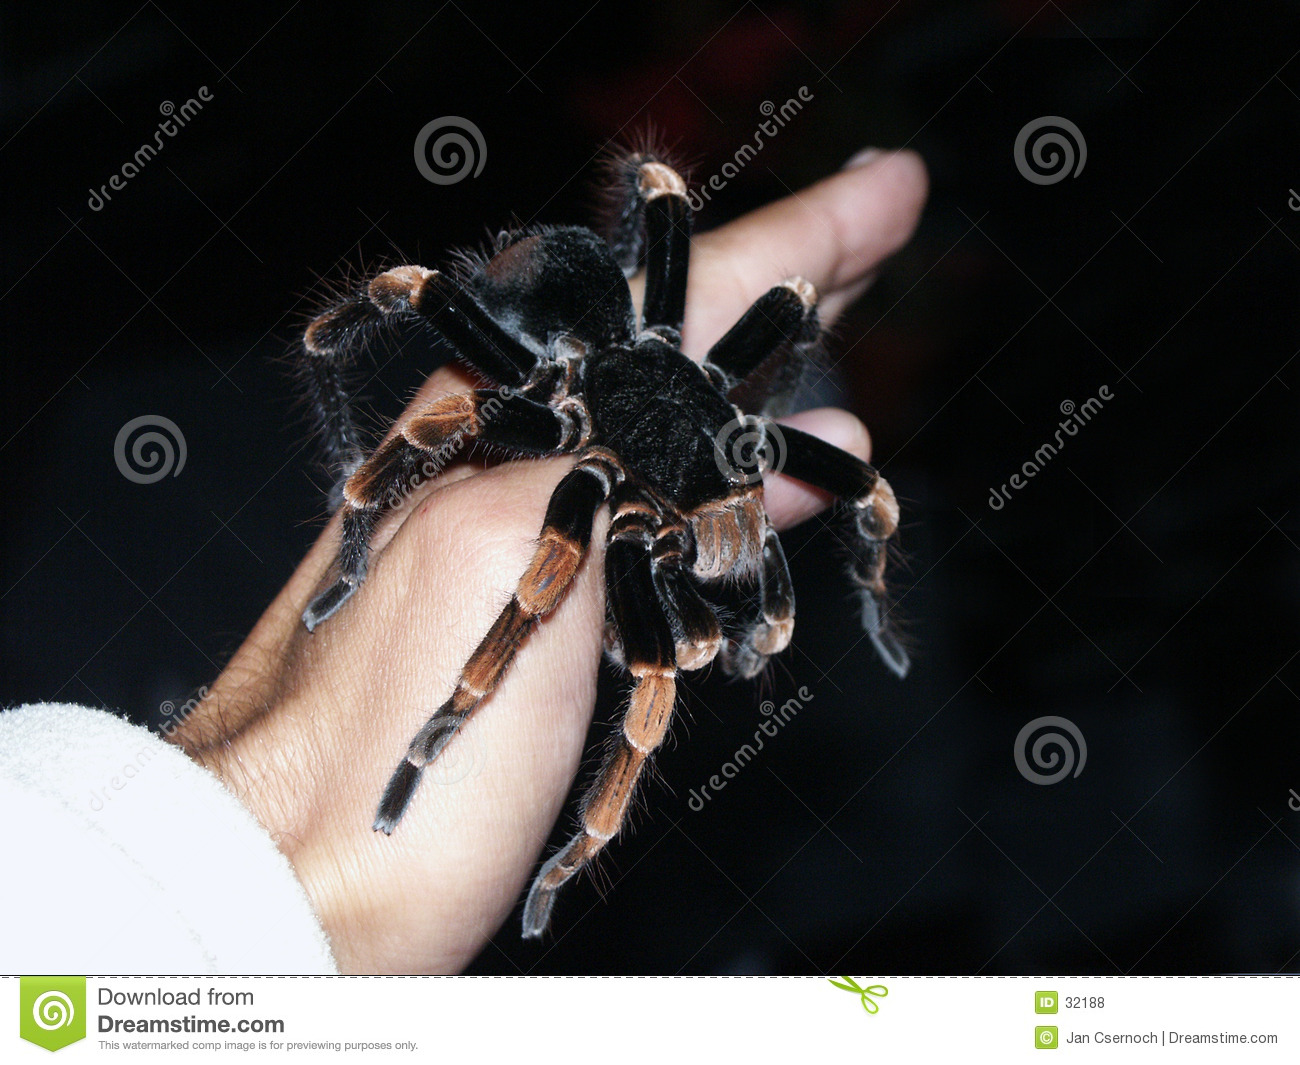 Tarantula spider on hand